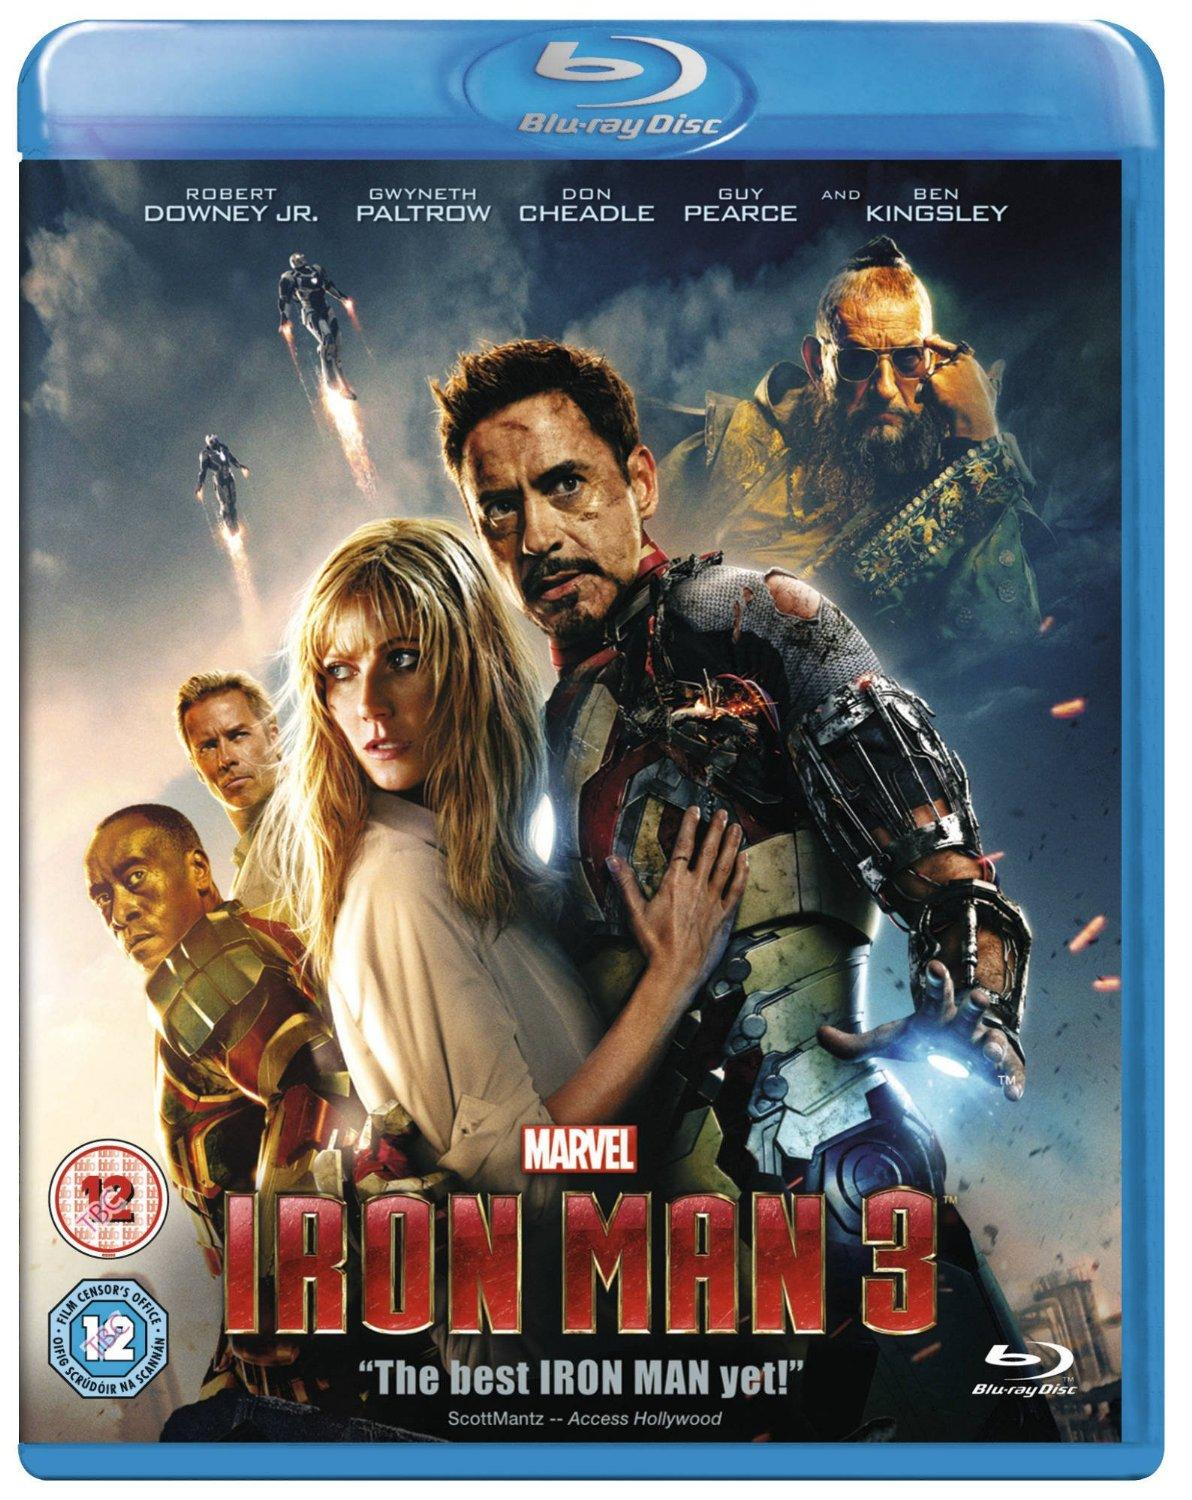 iron man 3 review Iron man 3 had action, drama, comedy - it was the best movie i've seen all year iron man 3 opens in theaters on may 3 check out my iron man 3 review.